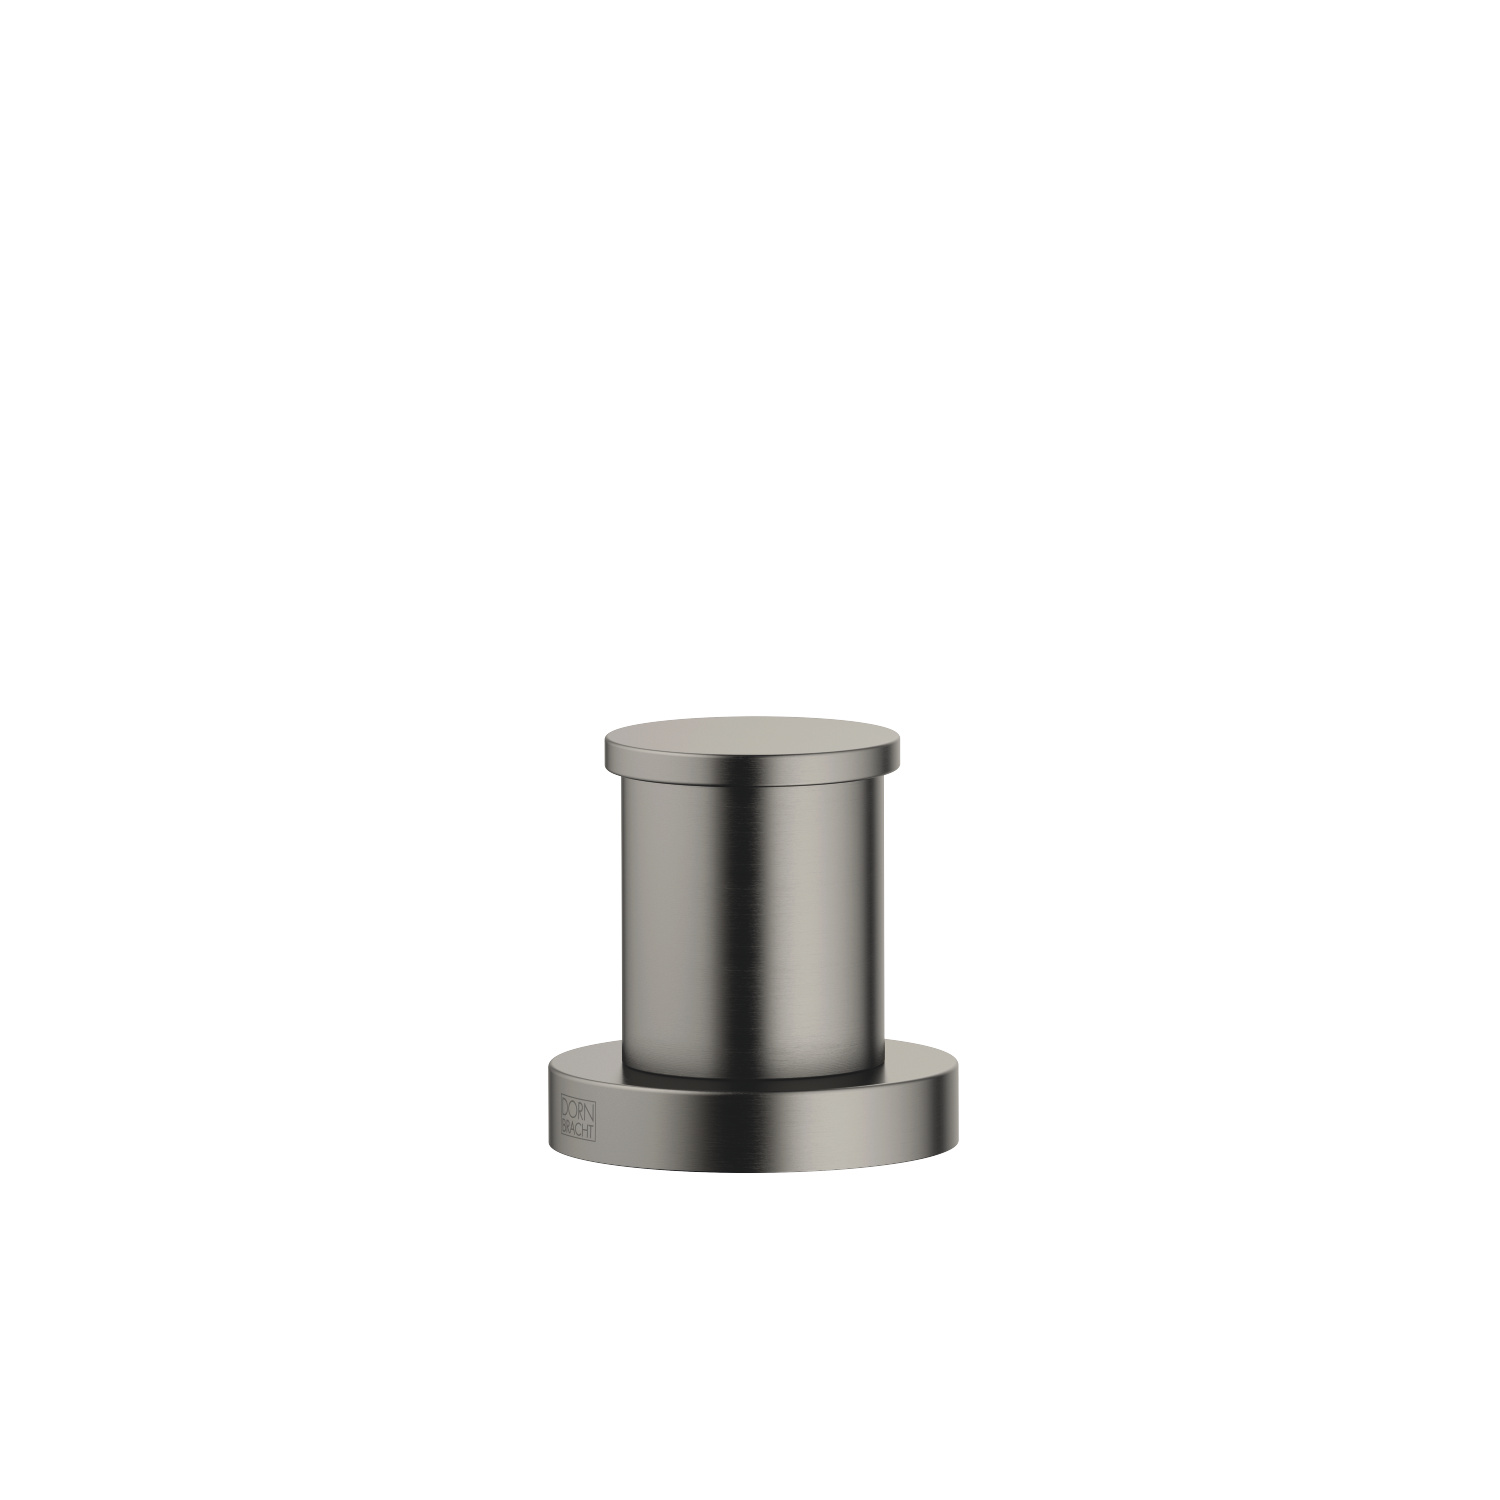 Two-way diverter for bath rim or tile edge installation - Dark Platinum matt - 29 140 979-99